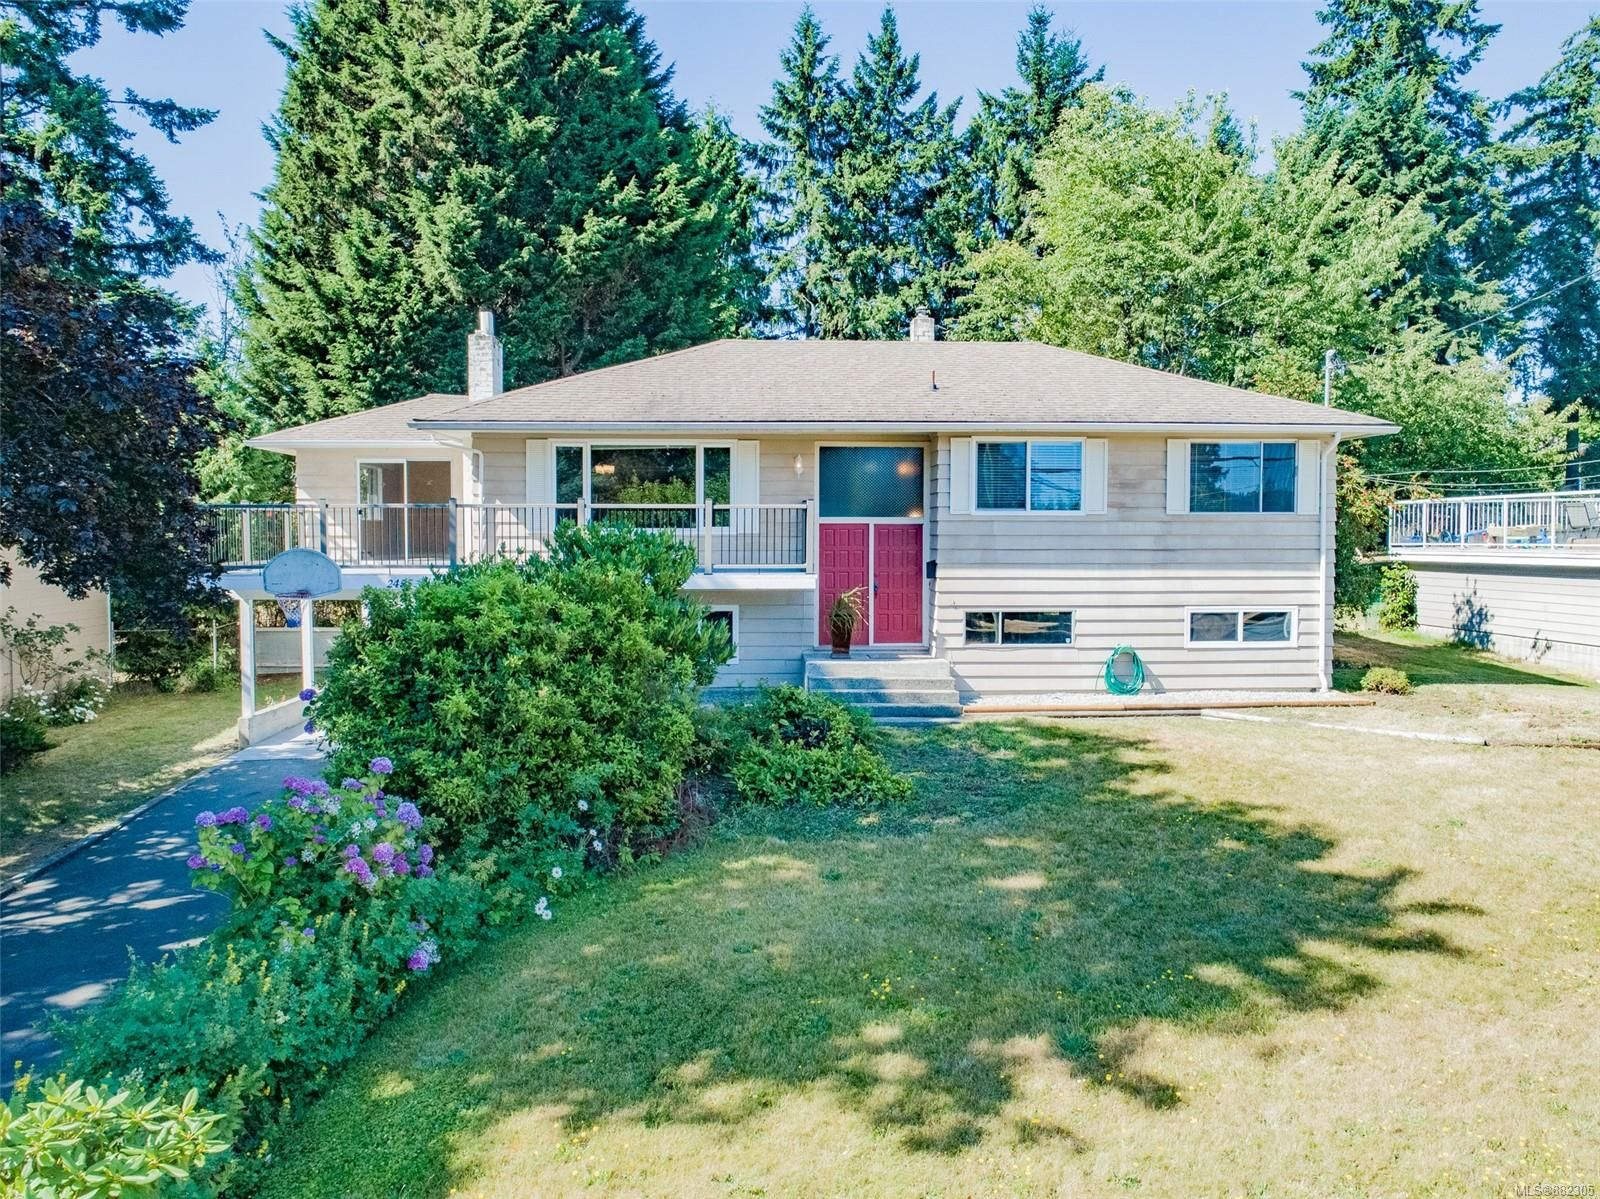 Main Photo: 2455 Marlborough Dr in : Na Departure Bay House for sale (Nanaimo)  : MLS®# 882305